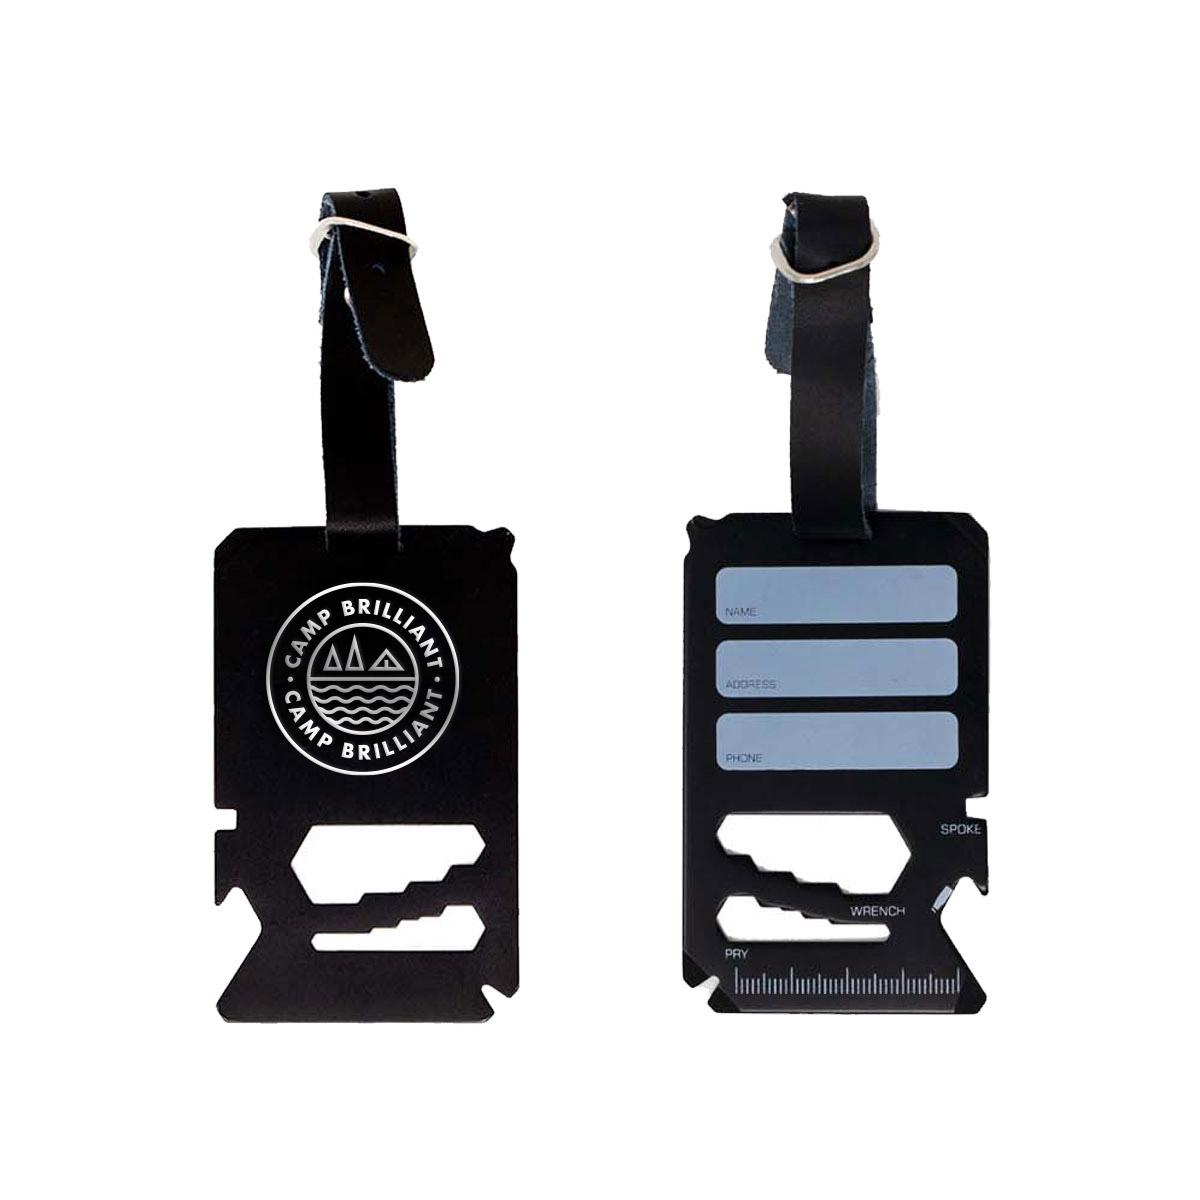 229160 multi tool luggage tag laser etched one location